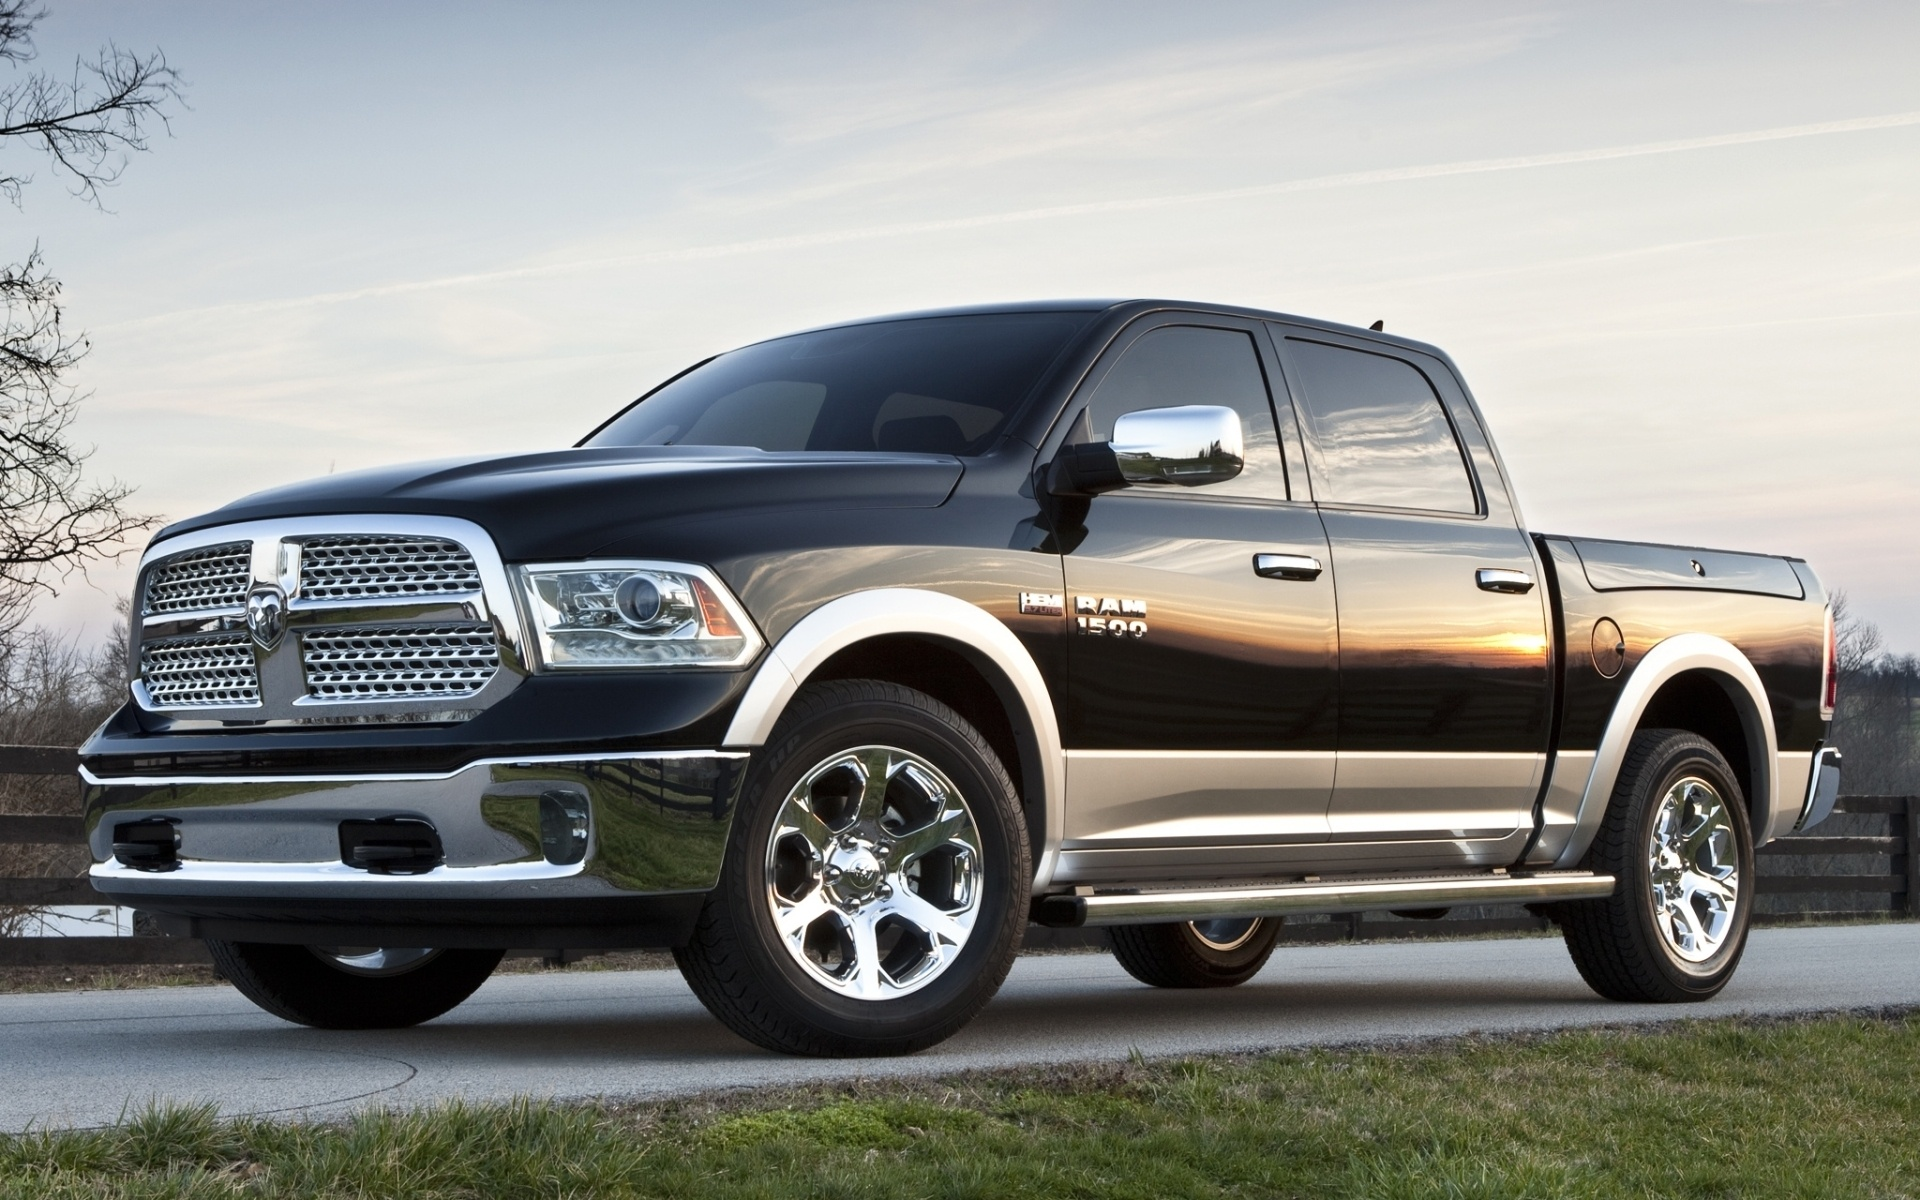 2013 Dodge Ram 1500 | 1920 x 1200 | Download | Close